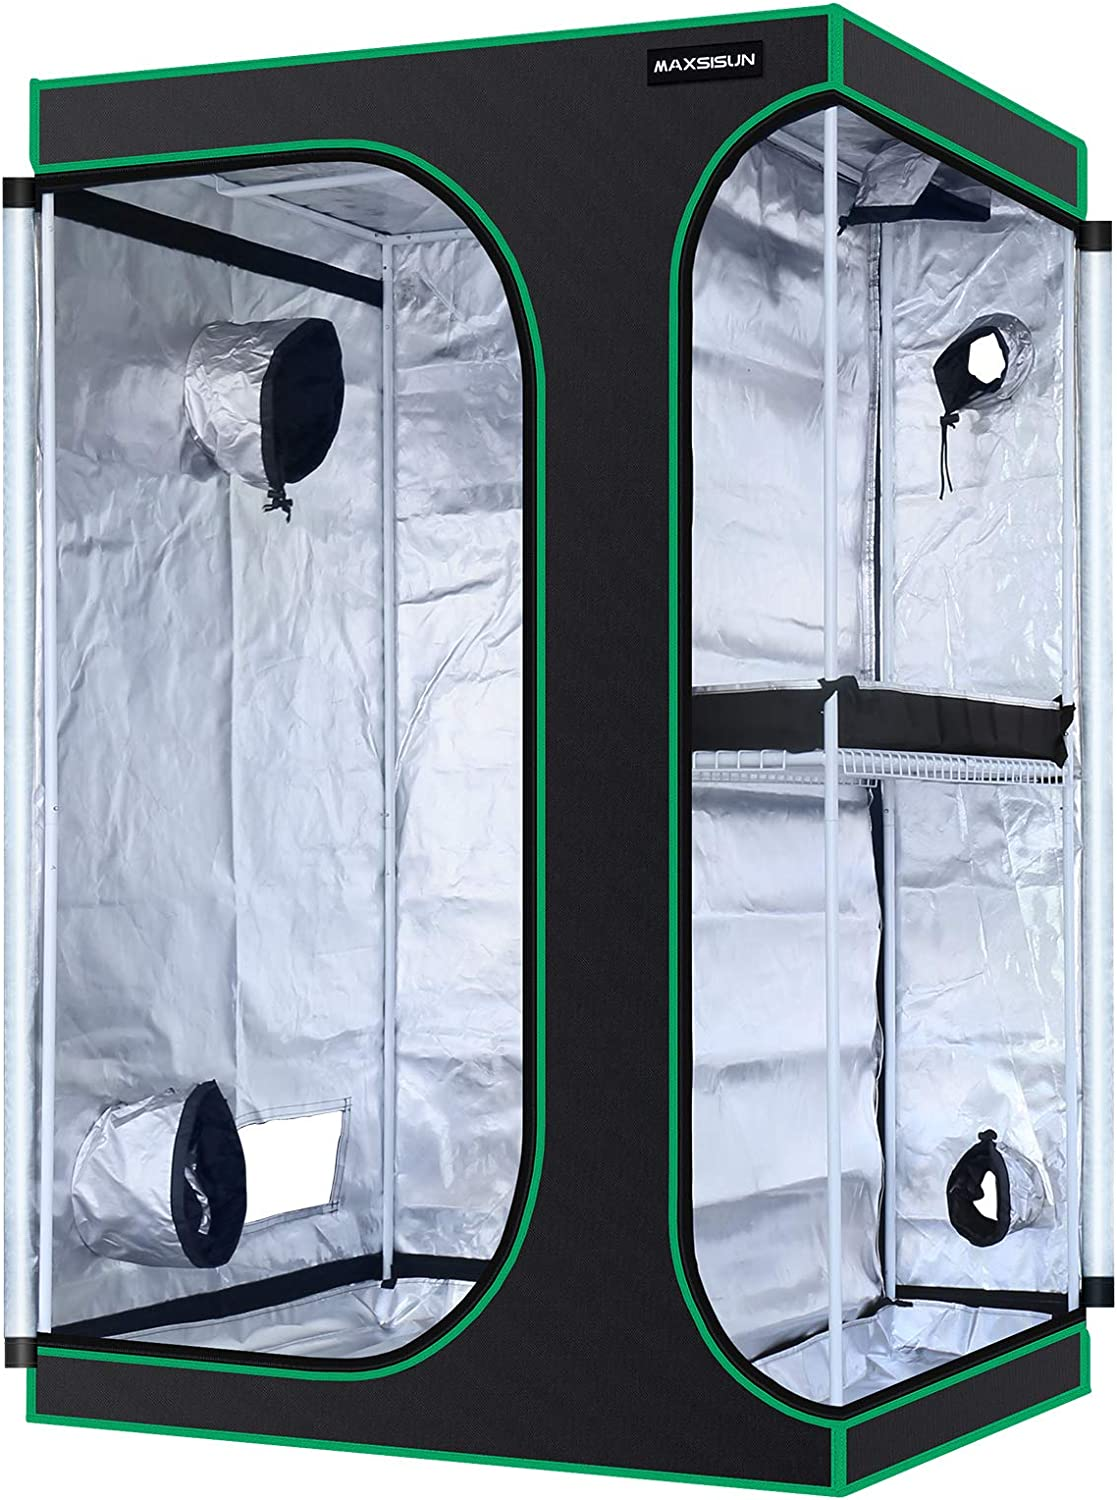 MAXSISUN 2-in-1 4x3 Grow Tent 600D Mylar Hydroponic Indoor Plants Growing Tent with Observation Window and Floor Tray, 48x36x72 Grow Cabinet Multi-Chamber Space from Seeding to Harvest